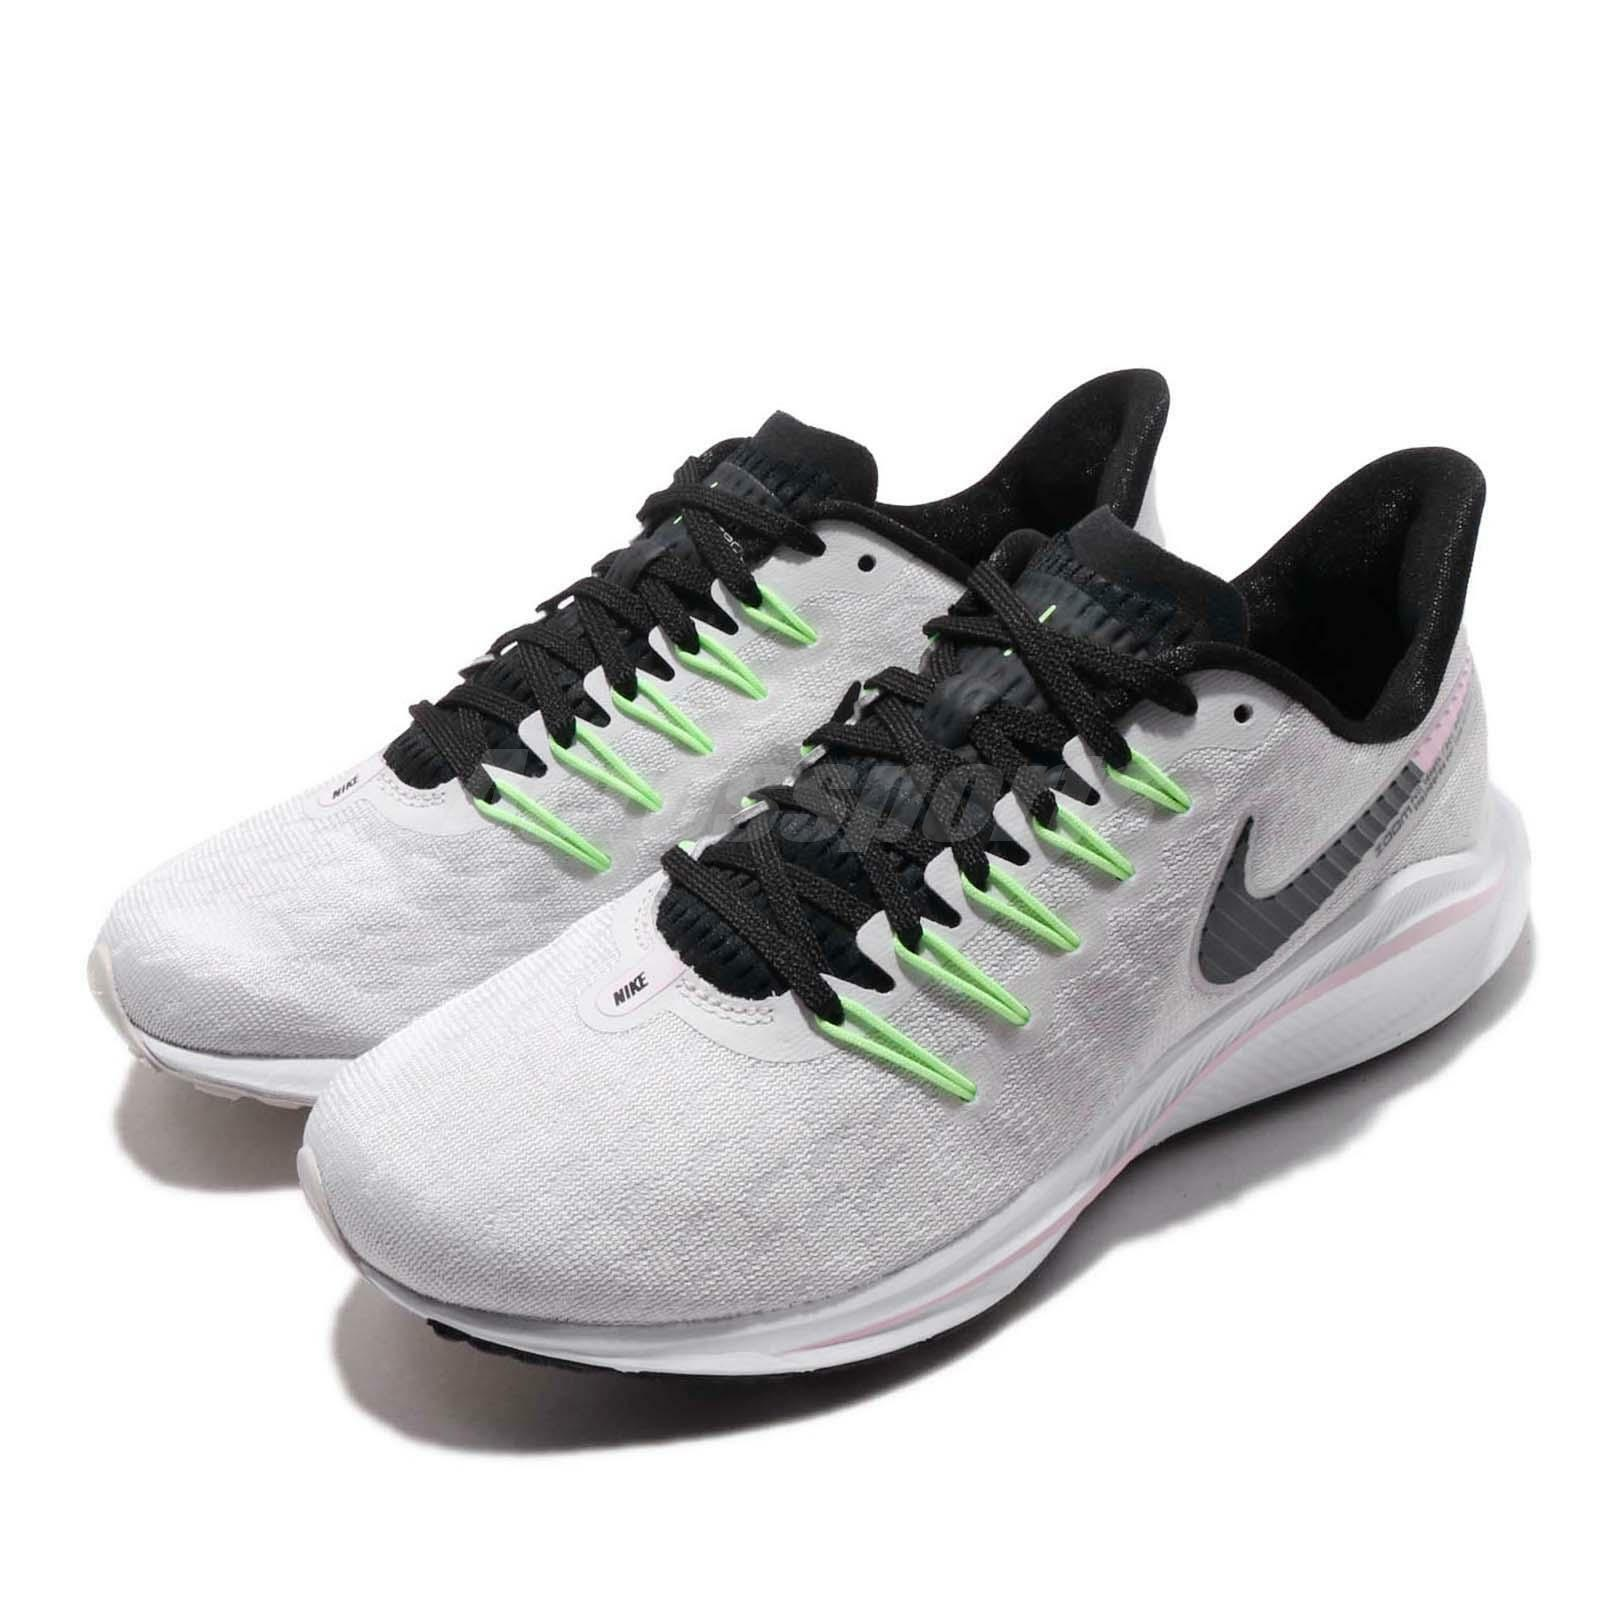 uk availability 4bd1f 5820c Nike Wmns Air Zoom Vomero 14 Grey Black Pink WoHommes WoHommes WoHommes  Running Shoes AH7858-002 a69a53